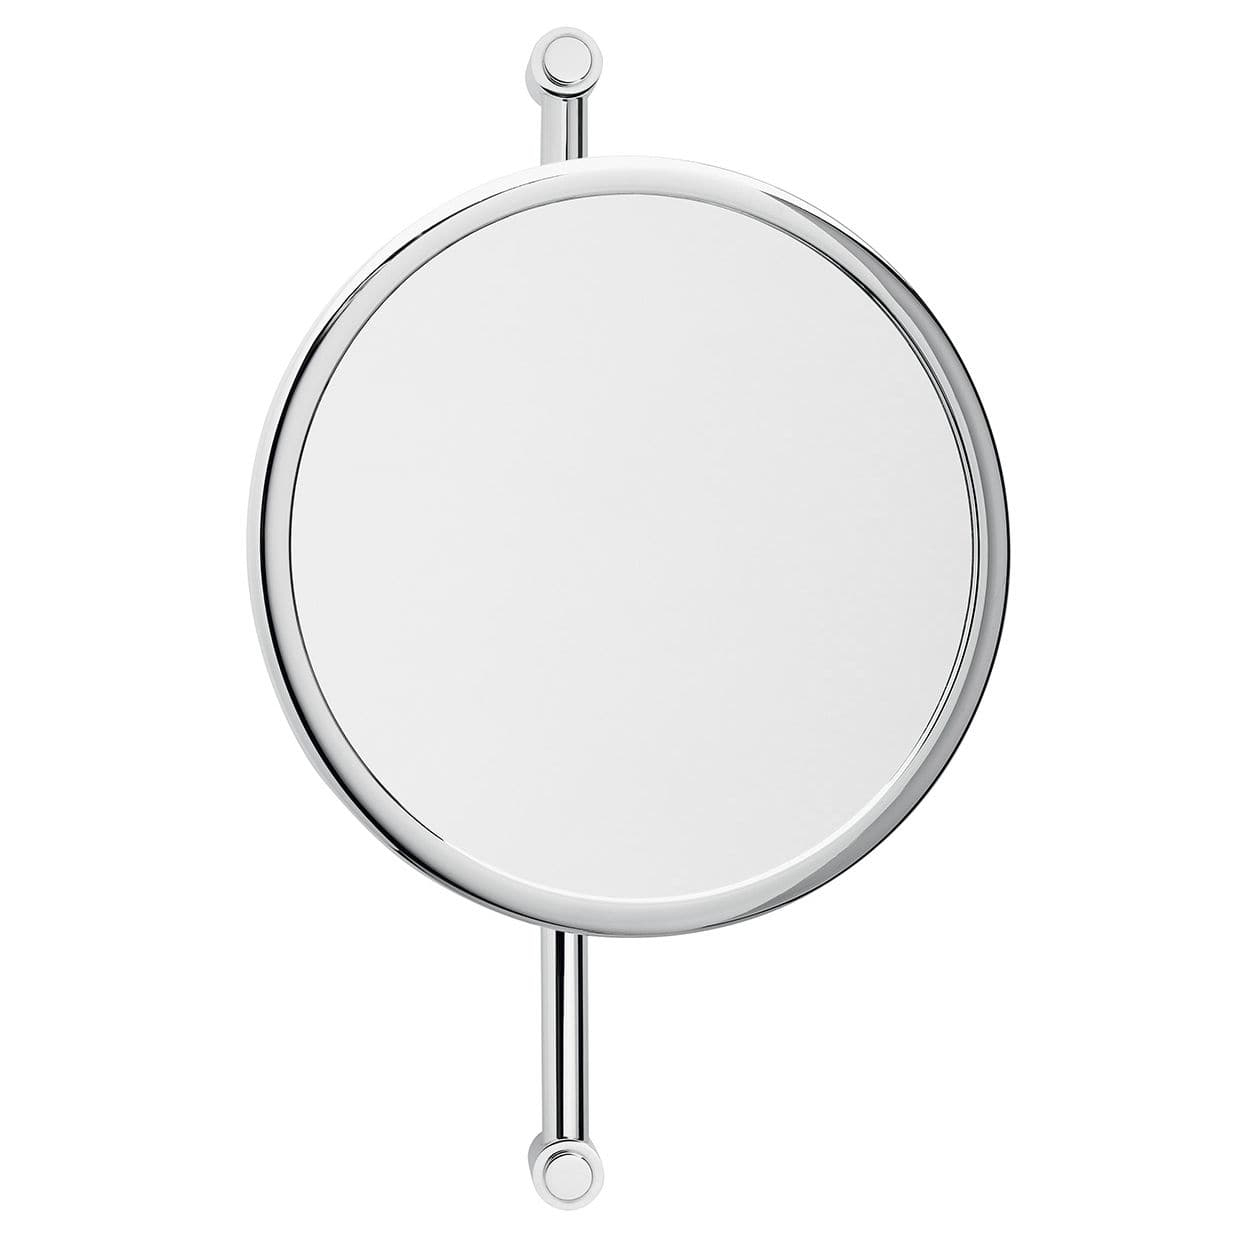 Wall Mounted Bathroom Mirror / Magnifying / Contemporary With Vertical Round Wall Mirrors (Image 20 of 20)